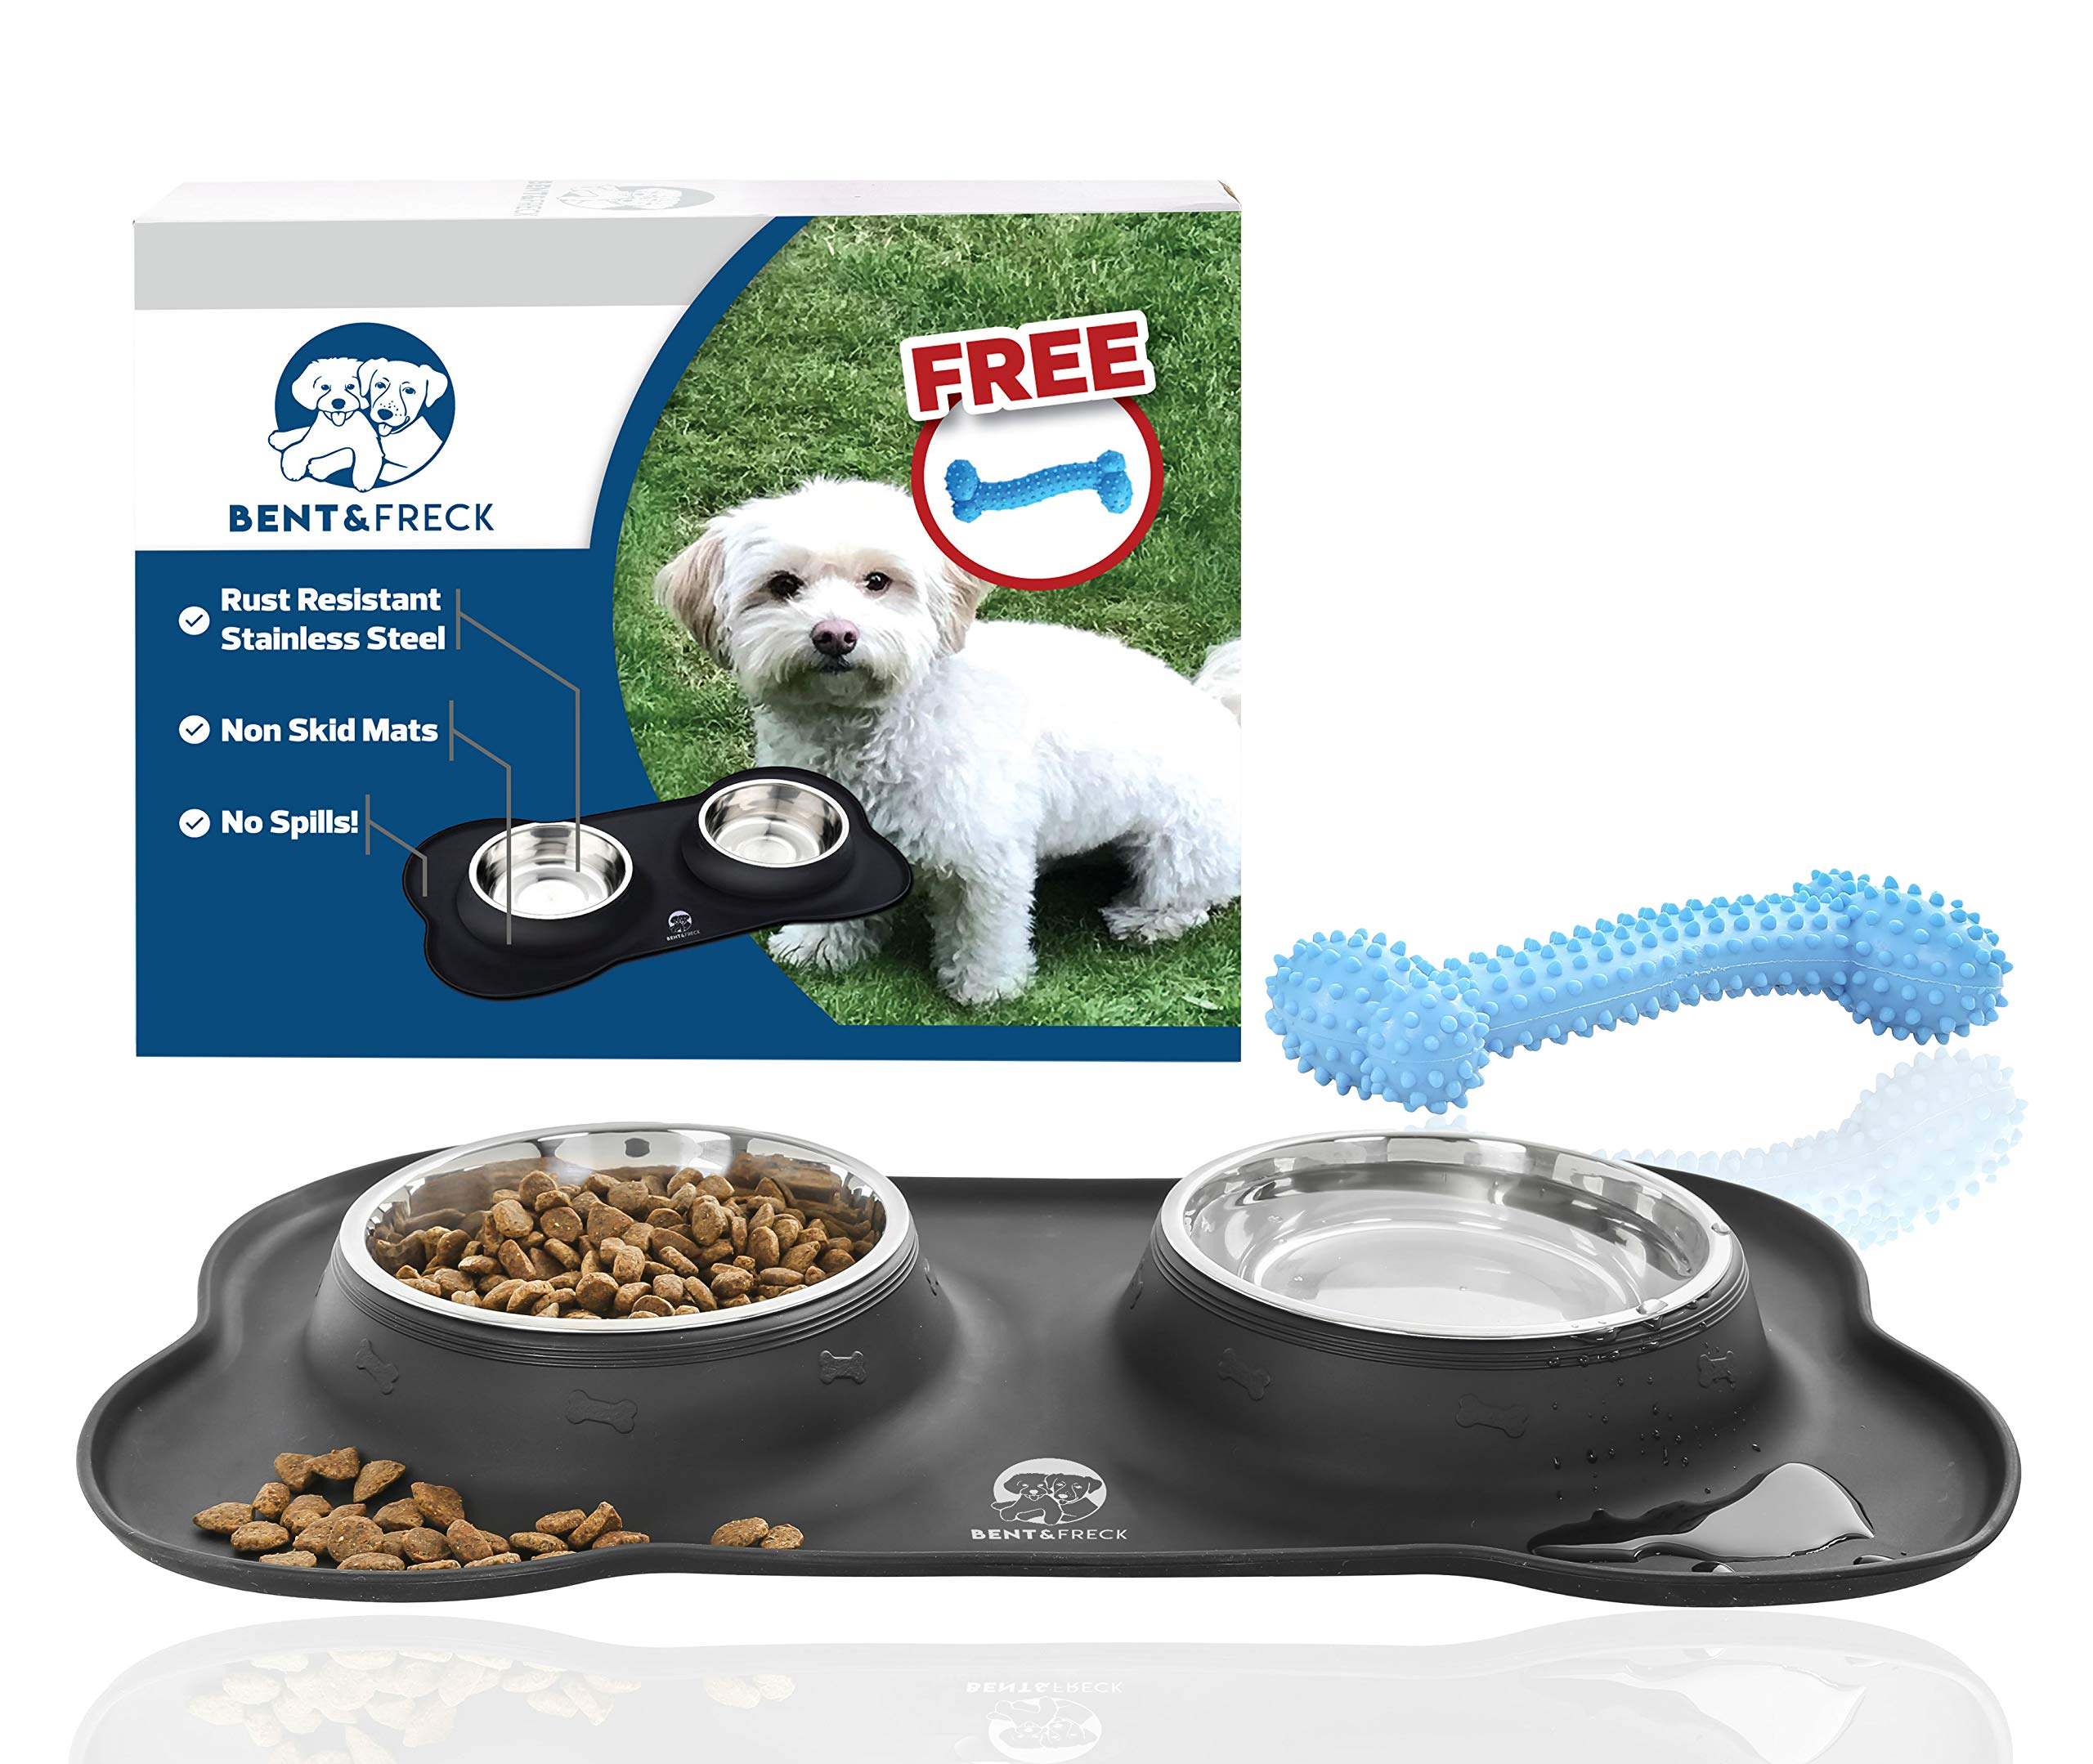 No Spill Dog Bowls by Bent&Freck - Non Skid Mat with Stainless Steel Bowls and Bonus Chew Toy - Perfect Feeding Tray for Small Dogs and Puppies - Untippable Holder Prevents Food, Water Spills and Mess by Bent&Freck